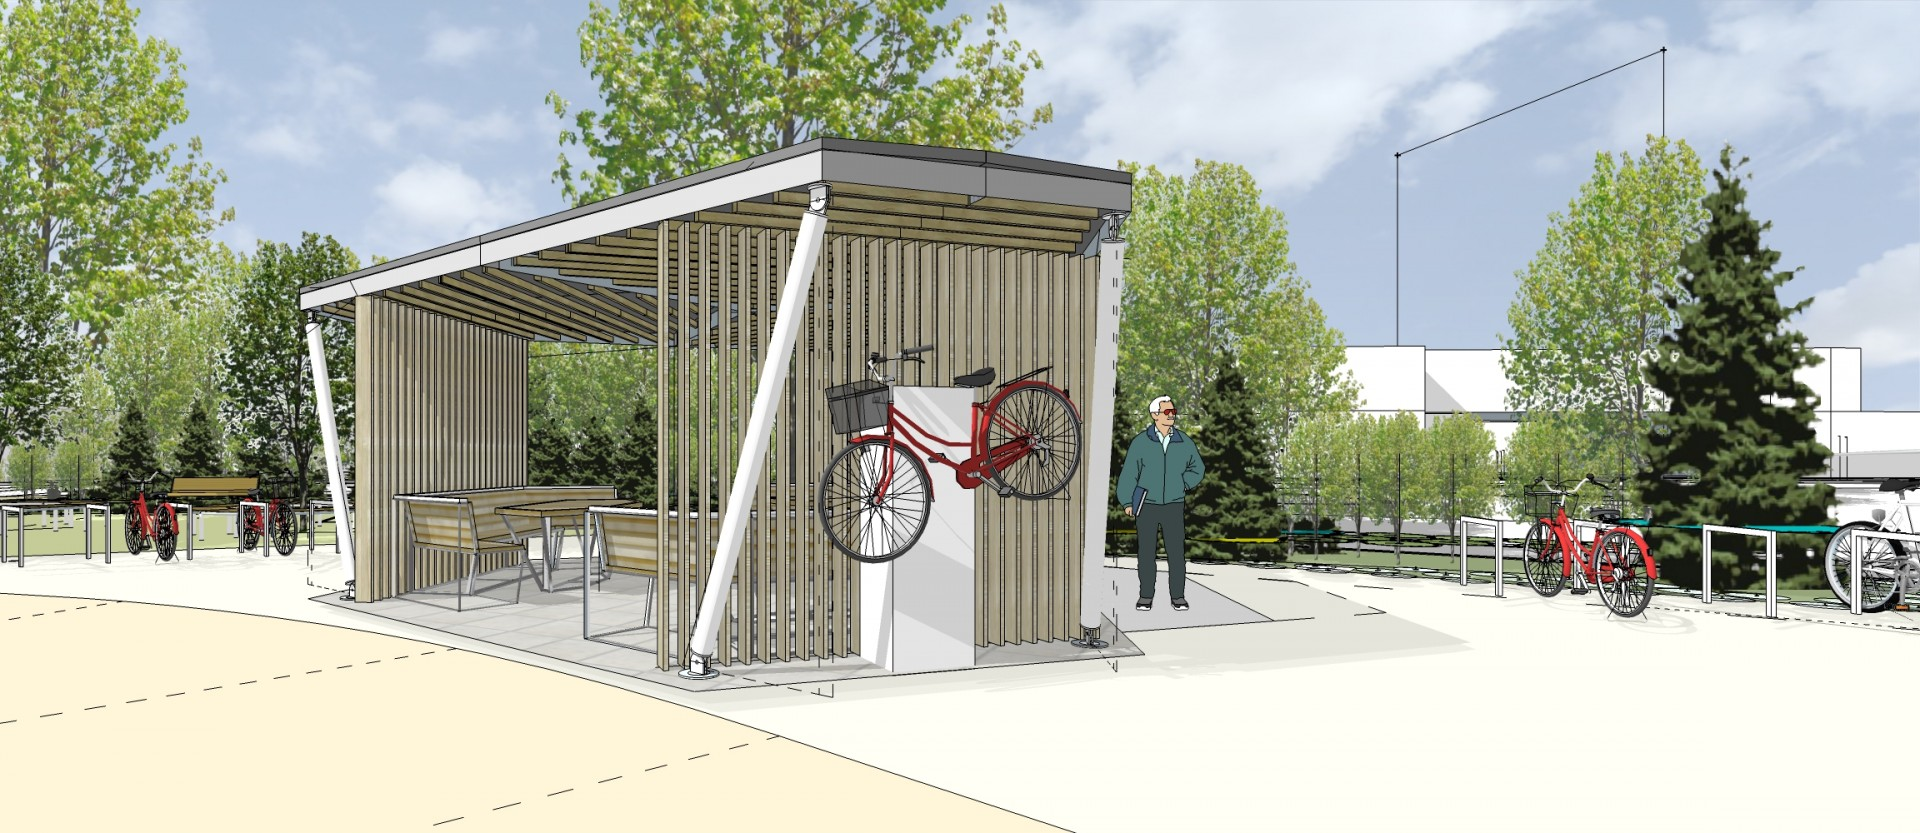 The shed is set up with bicycle repairing station, places to sit and vending machines.